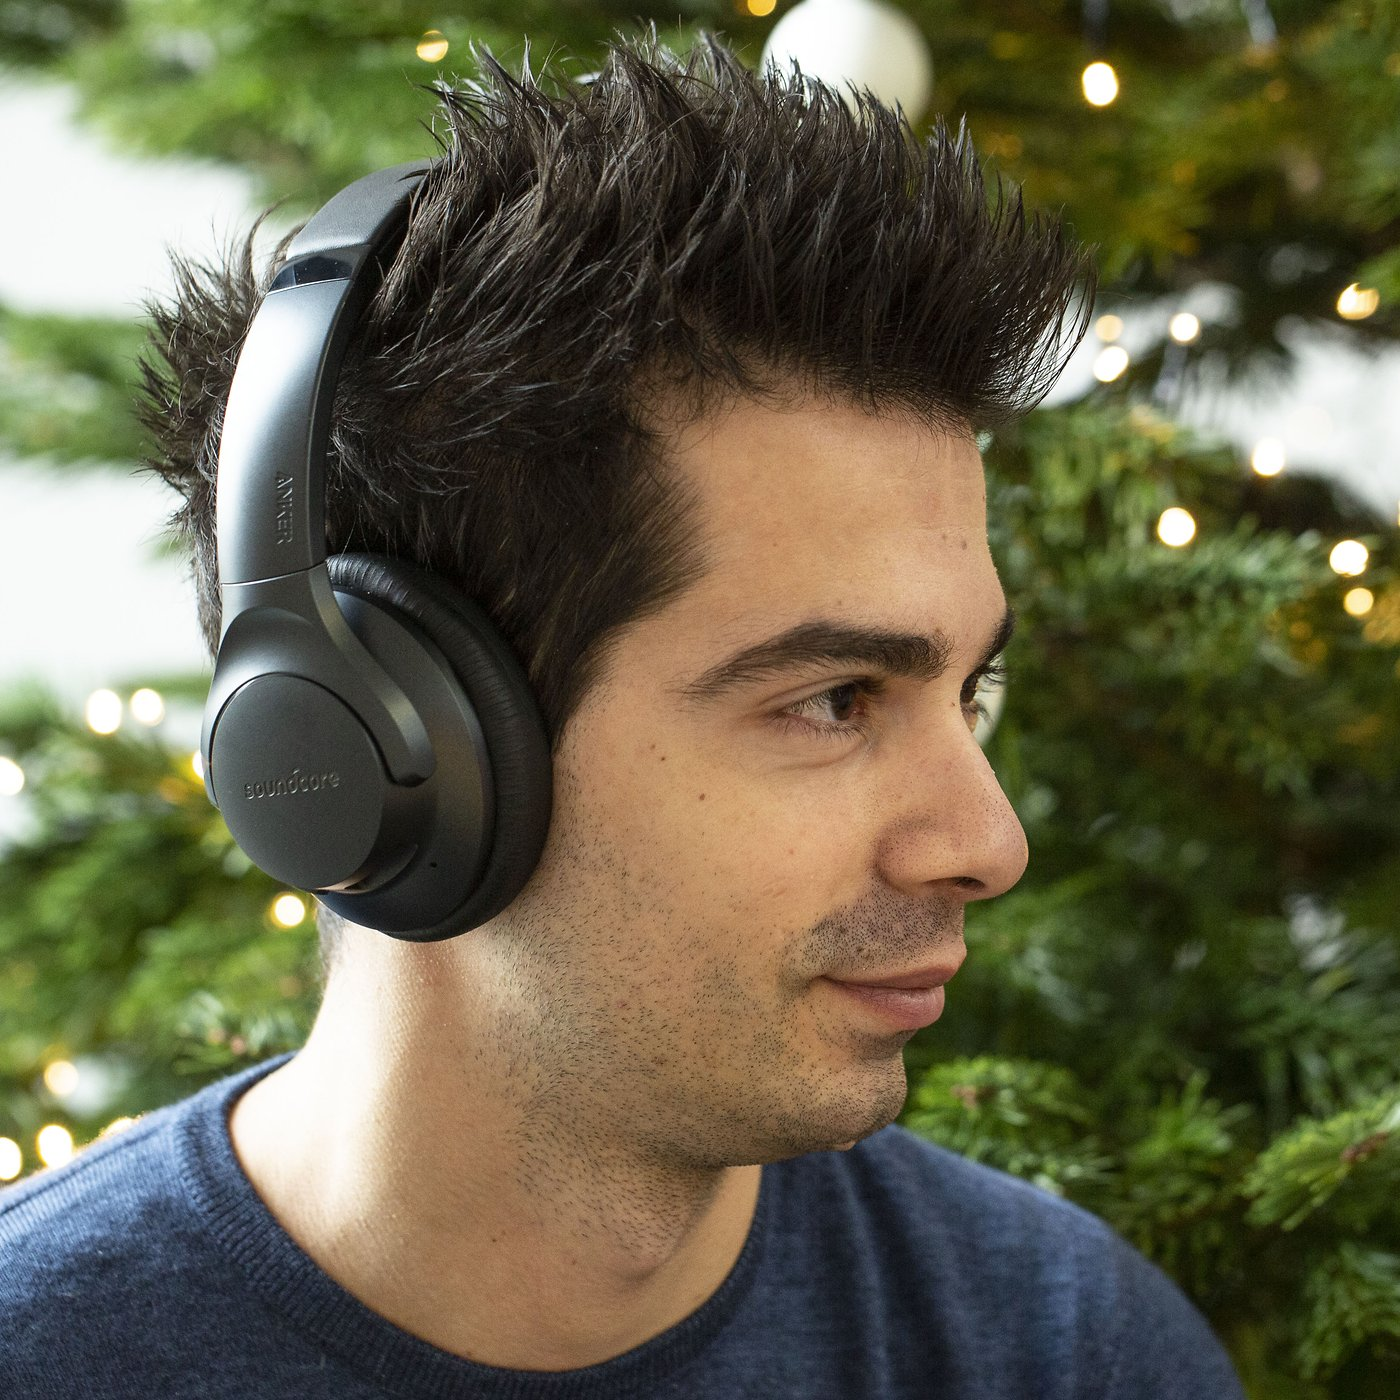 Common problems and solutions for wireless Bluetooth headphones